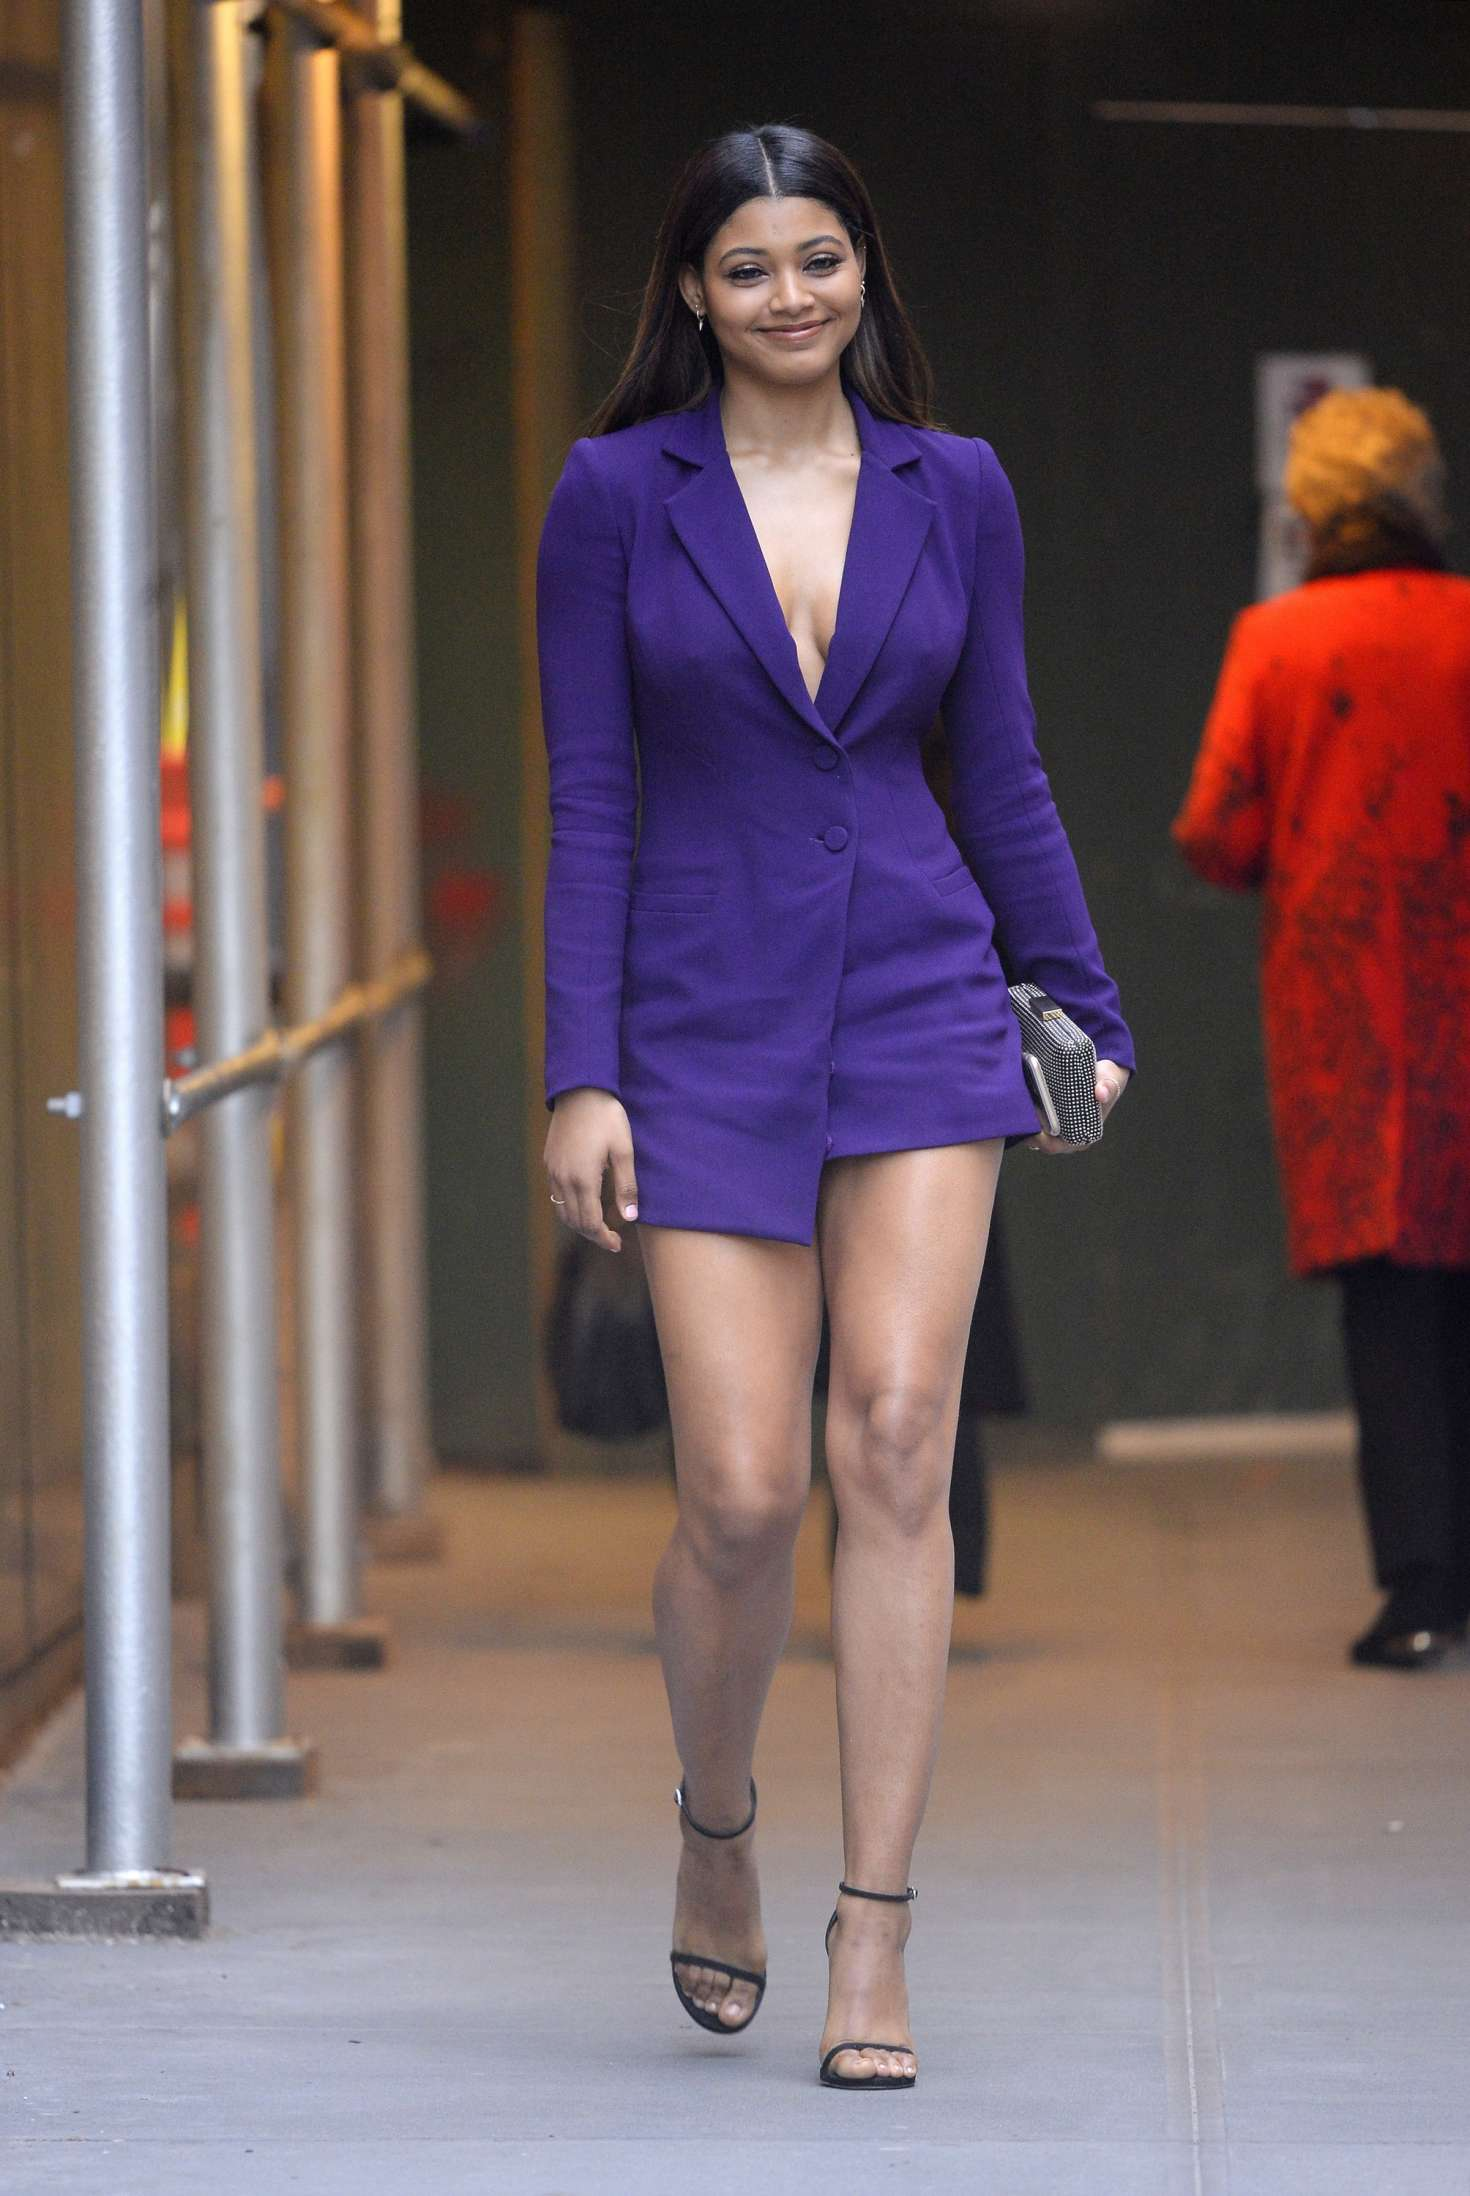 danielle herrington in purple mini dress out in new york city. Black Bedroom Furniture Sets. Home Design Ideas